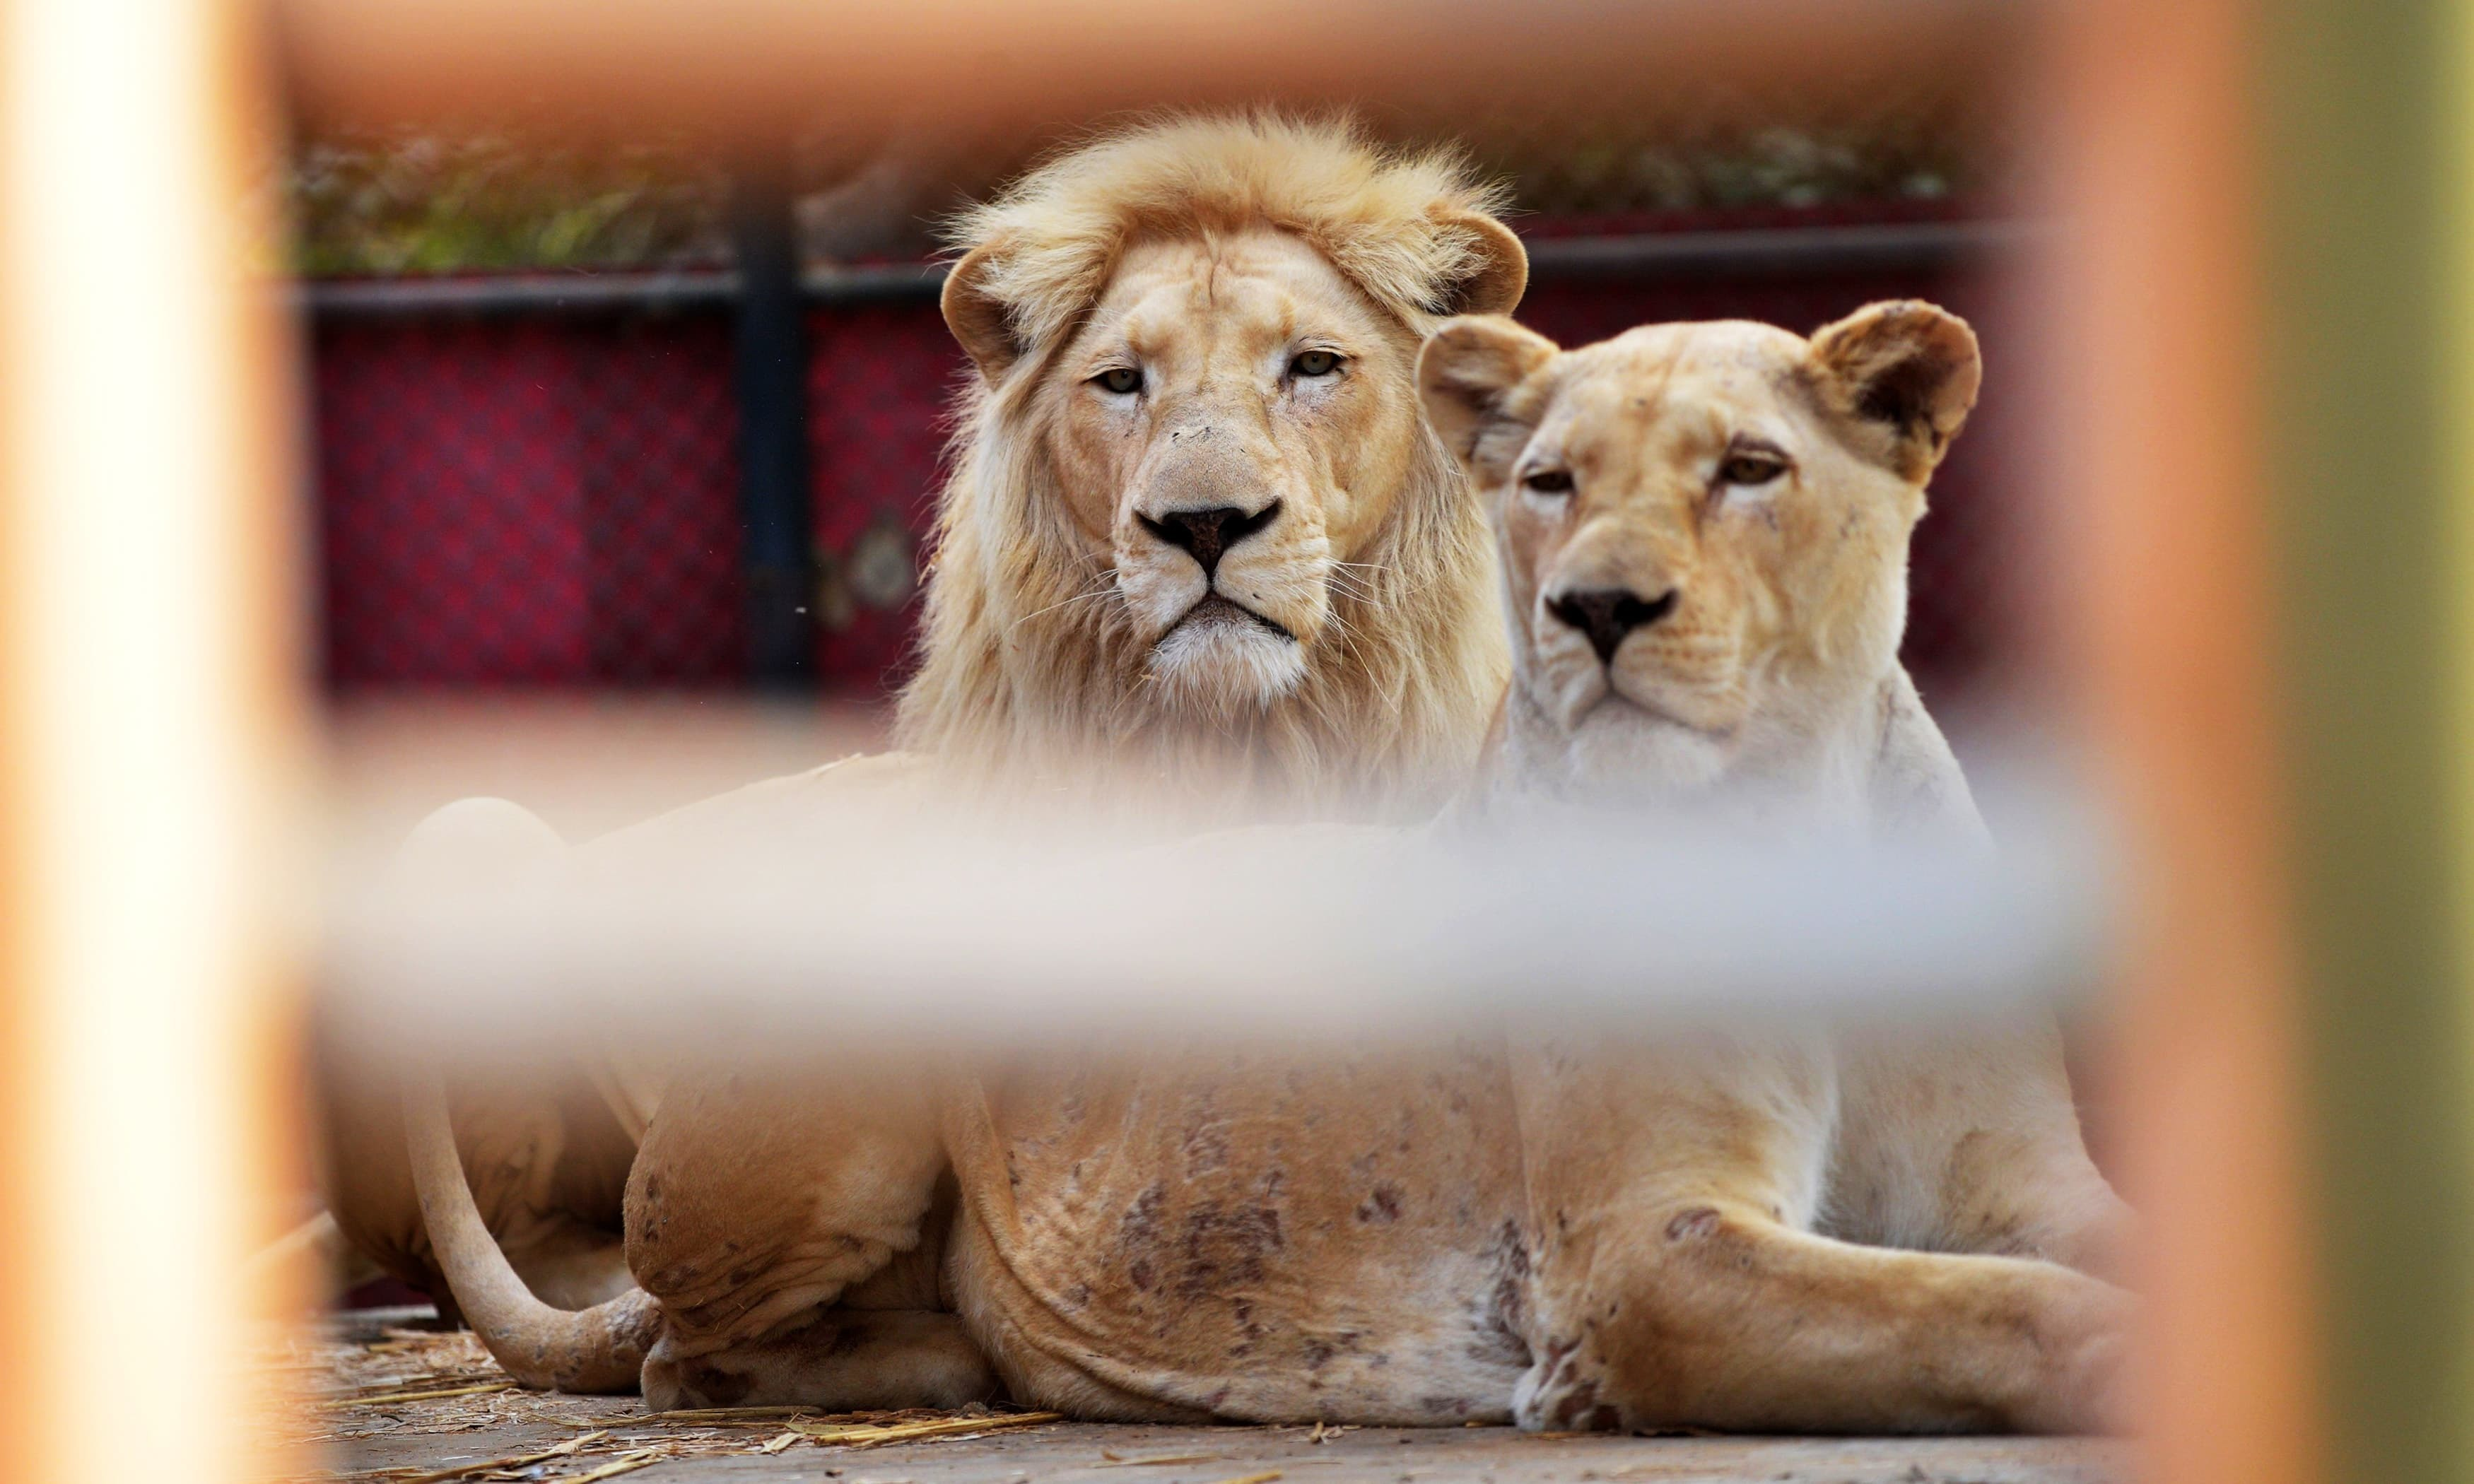 Inquiry committee to investigate deaths of Marghazar Zoo animals during relocation. — AFP/File